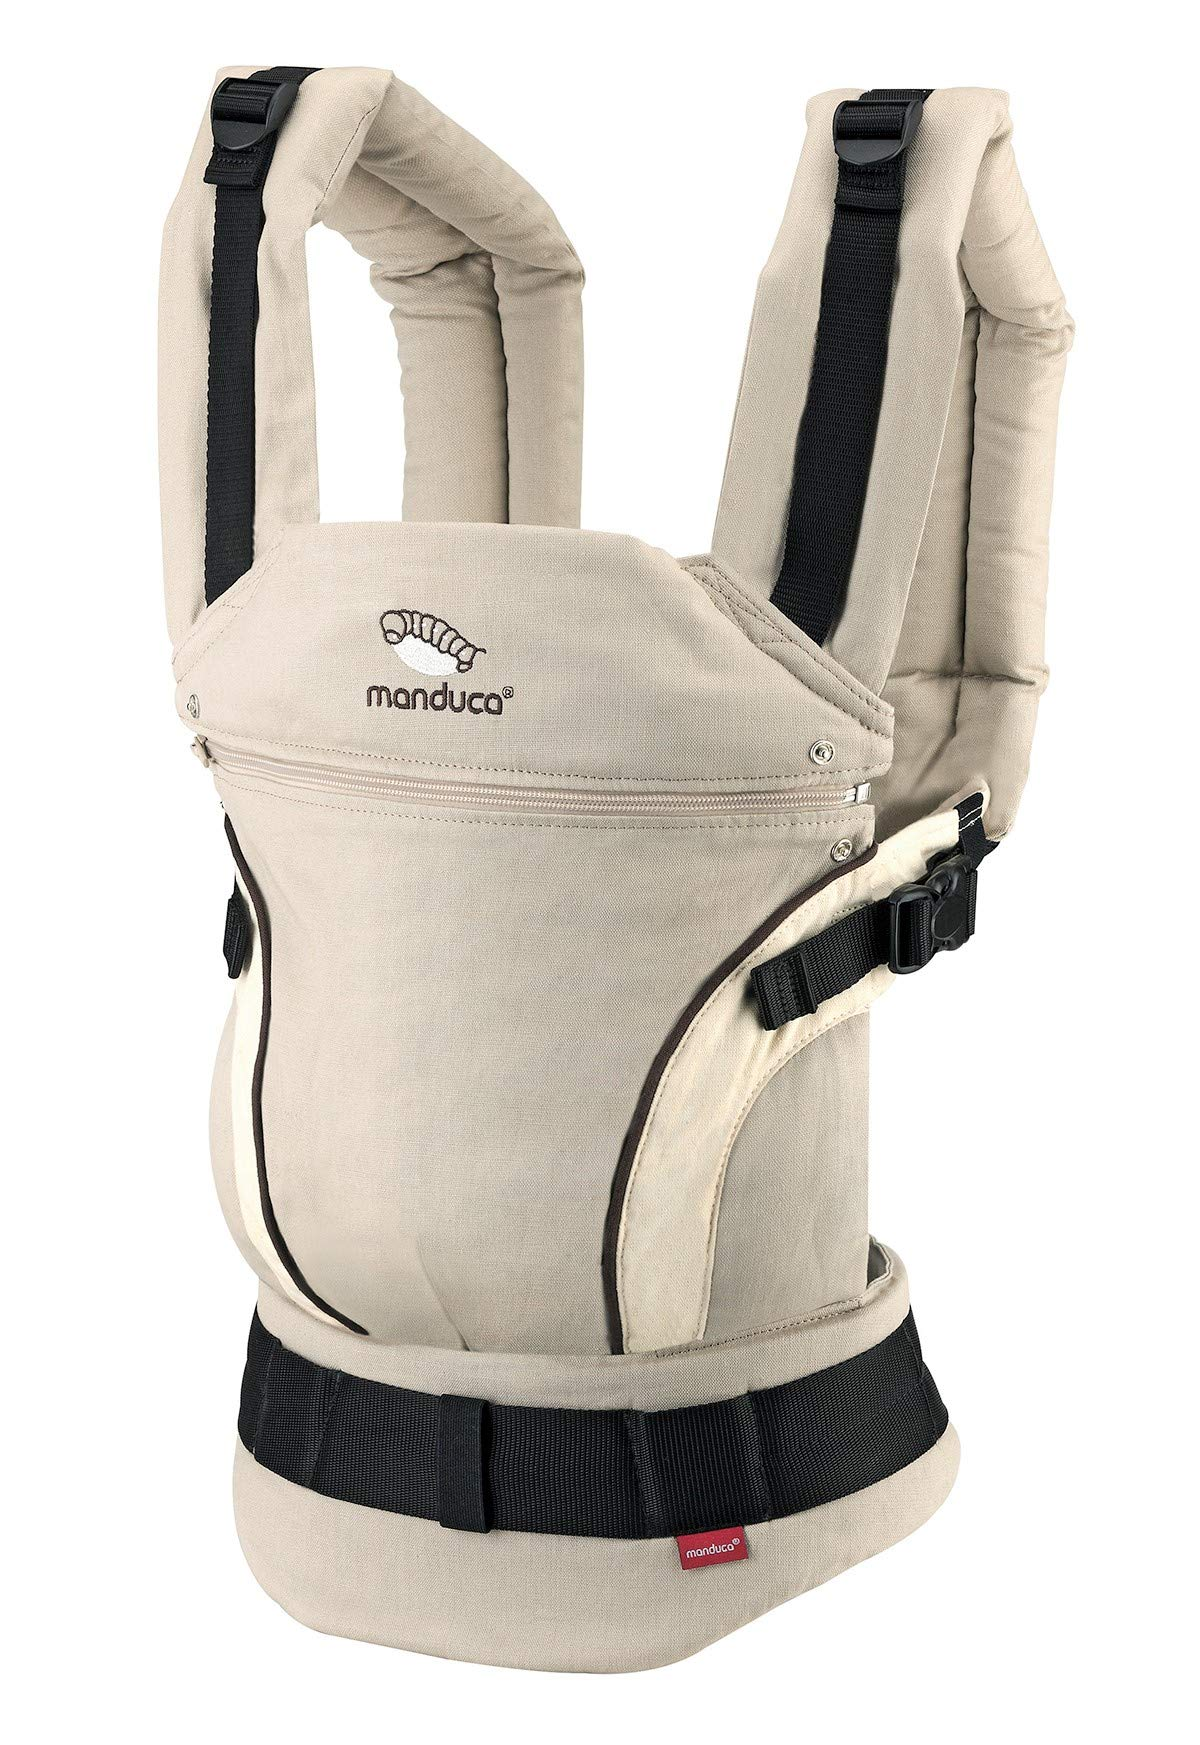 manduca First Baby Carrier > HempCotton Sand < Ergonomic Baby Carrier, Soft & Sturdy Canvas (Organic Cotton & Hemp), Front Carry, Hip Seat and Back Carry, from Newborn to Toddlers up to 20kg, Beige Manduca New features: Improved three-point-buckle (secure & easy to open); extra soft canvas made of 45% hemp and 55% organic cotton (outside), 100% organic cotton lining (inside) Already integrated in every baby carrier: infant pouch (newborn insert), stowable headrest & sun protection for your baby, patented back extension (grows with your child); Optional accessories for newborns: Size-It (seat reducer) and Zip-In Ellipse Ergonomic design for men & women: Soft padded shoulder straps (multiple adjustable) & anatomically shaped stable hipbelt (fits hips from 64cm to 140cm) ensure balanced weight distribution. No waist-belt extension needed 2